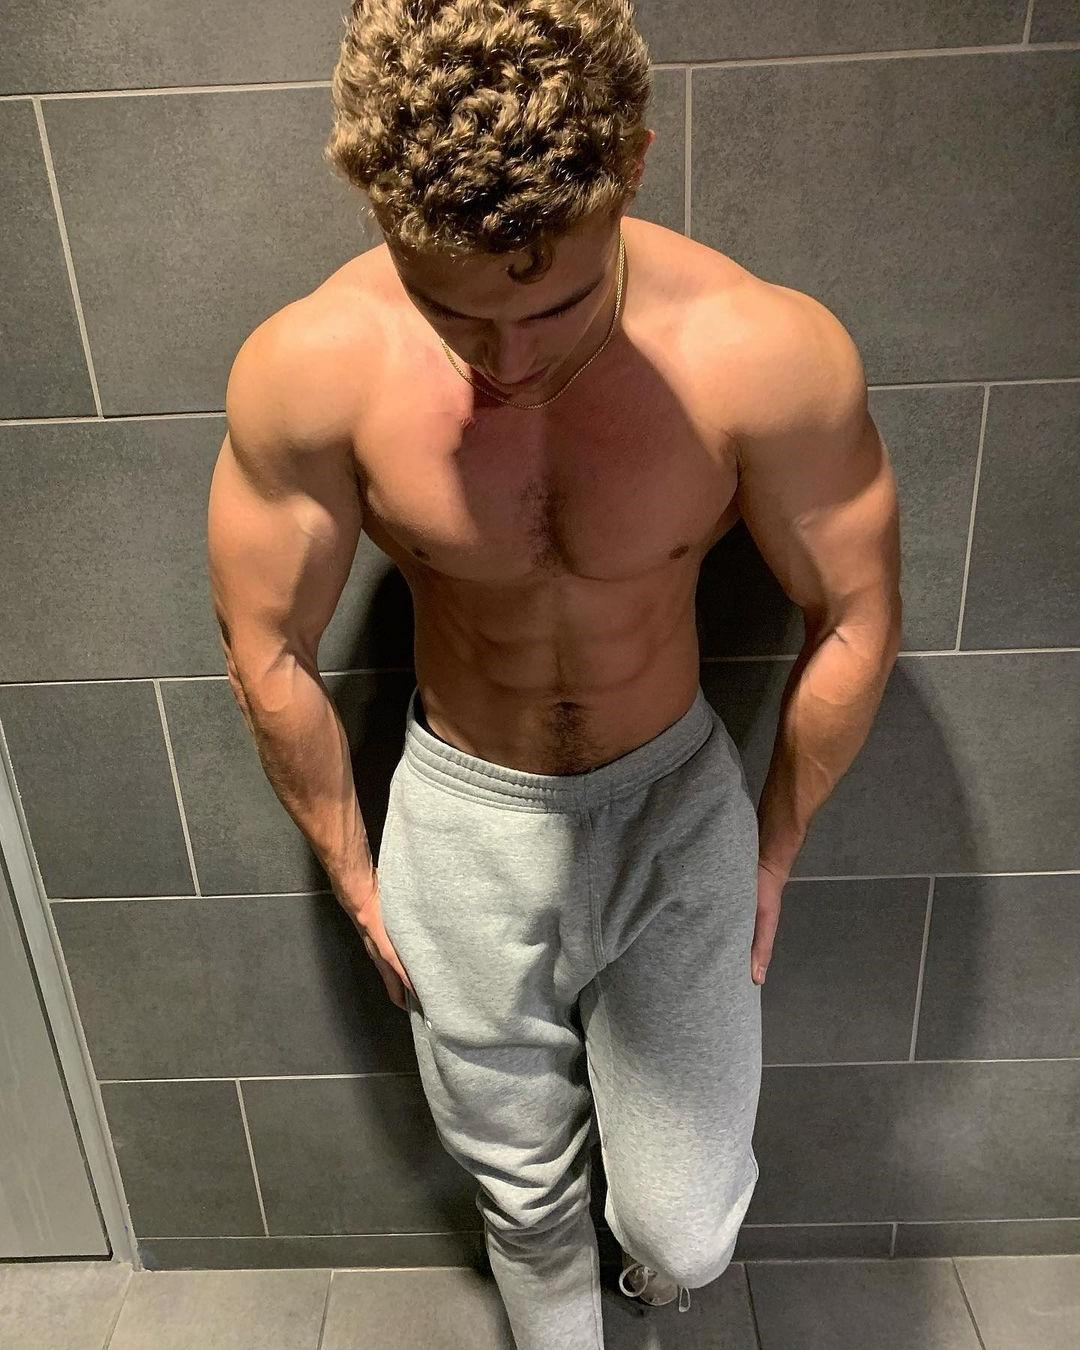 hot-guy-colton-wergin-shirtless-muscle-body-big-shoulders-treasure-trail-curly-hair